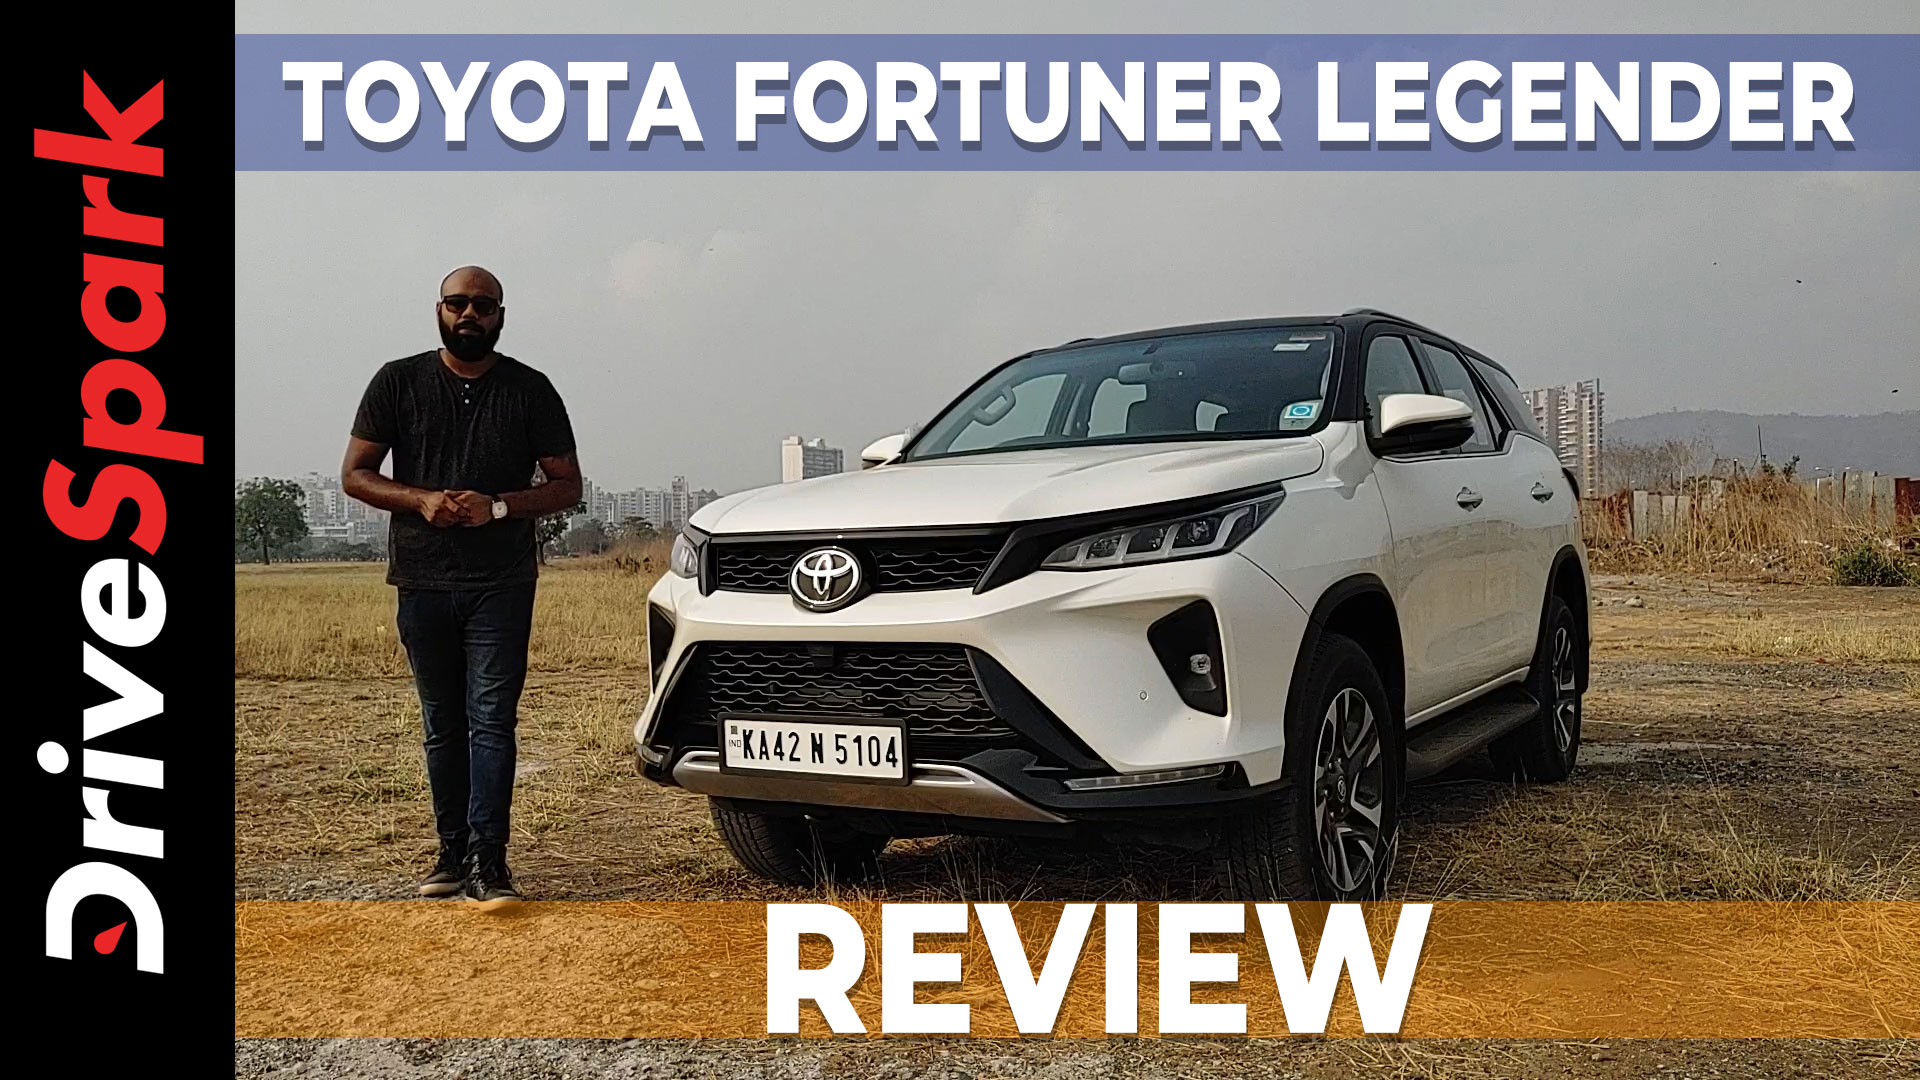 Toyota Fortuner Legender Review | DriveSpark